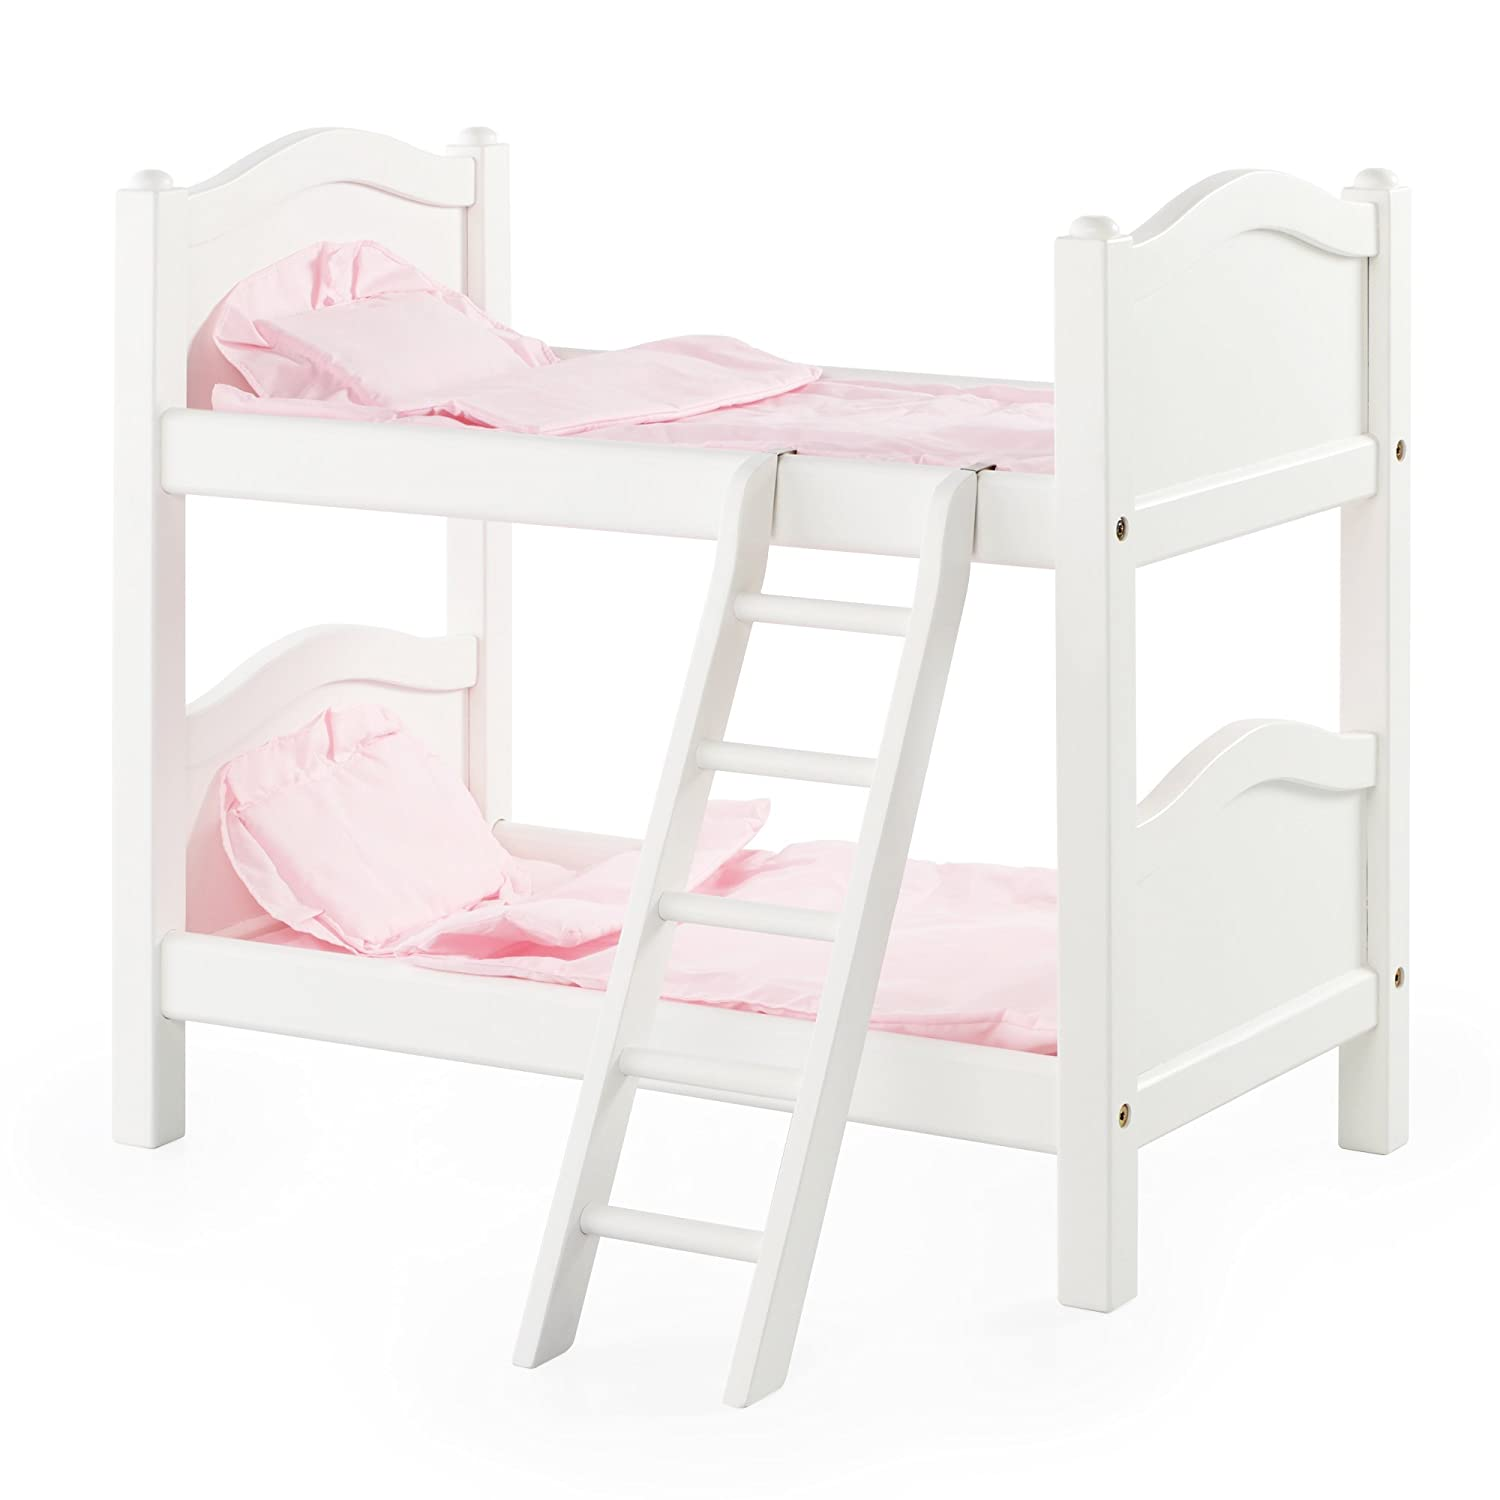 Amazon.com : Guidecraft White Wooden Doll Bunk Bed - Fits 18 ...